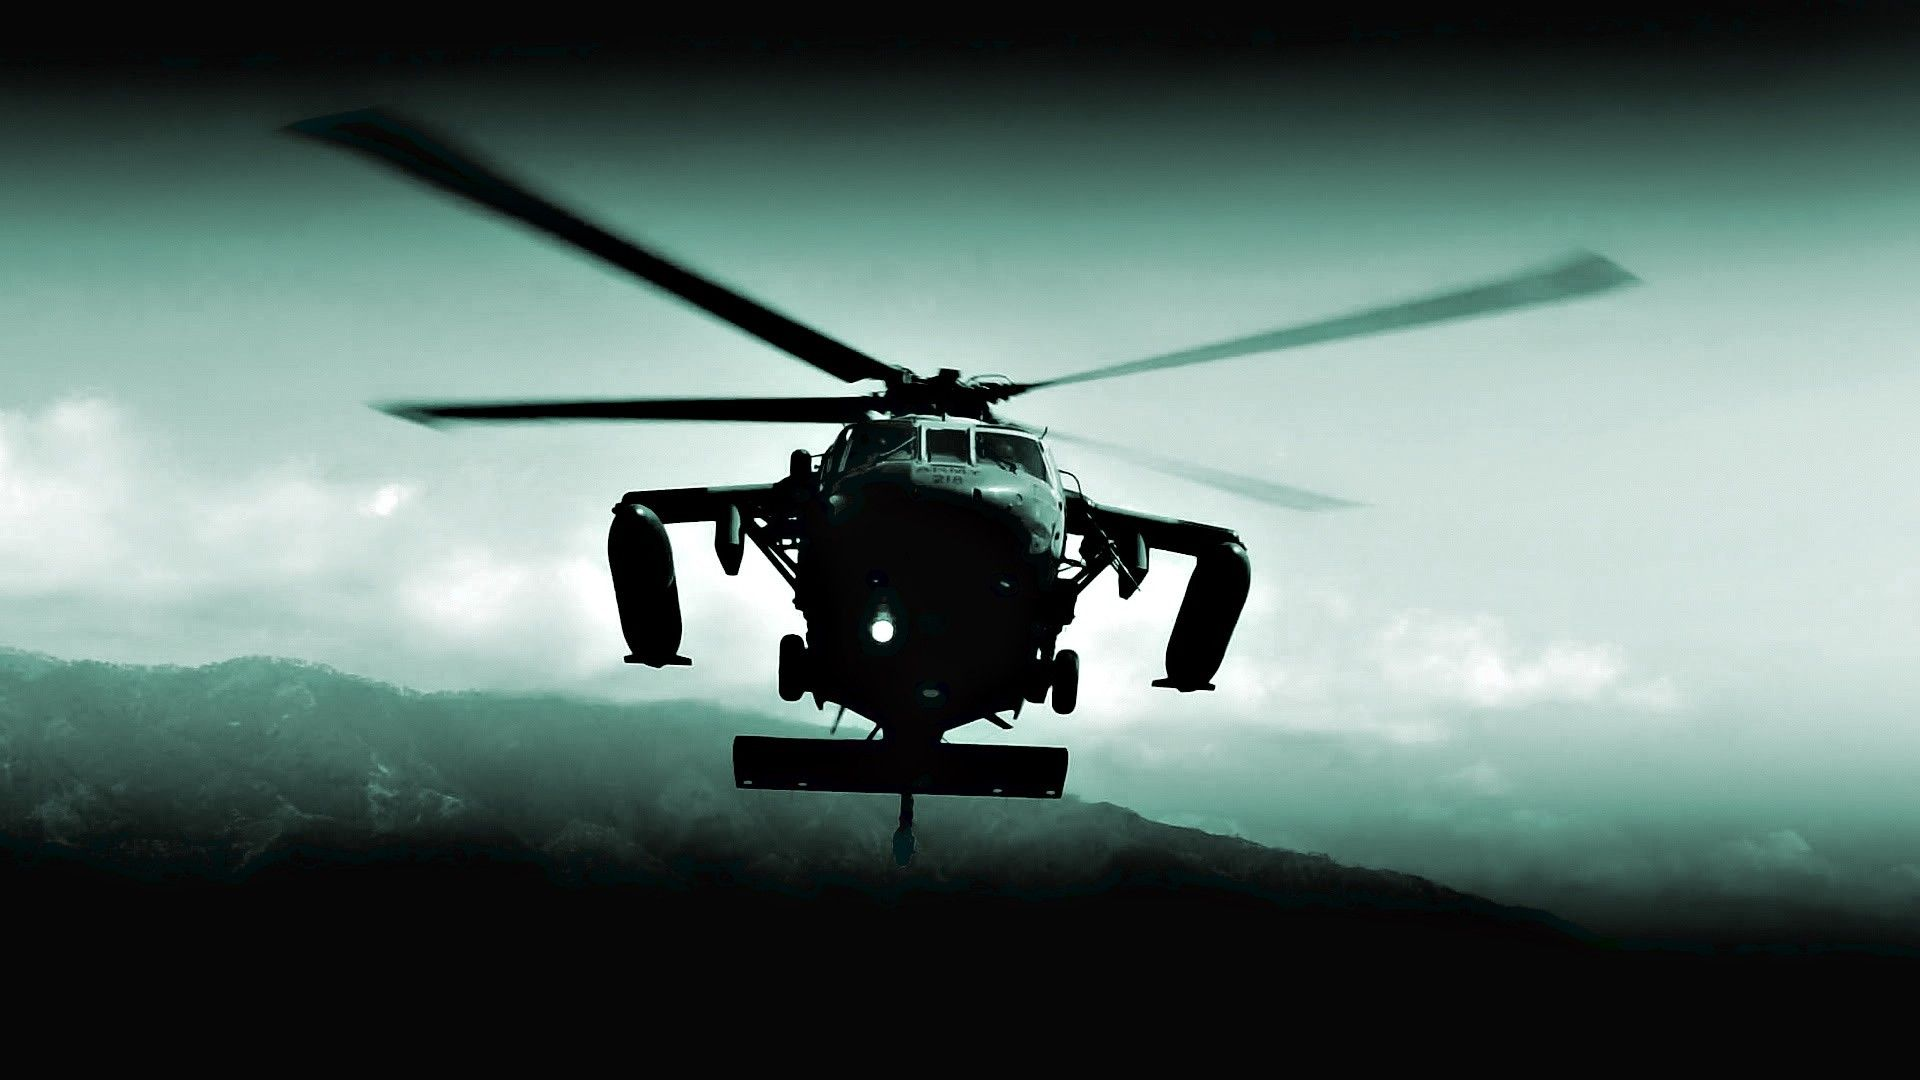 helicopter wallpaper | helicopters wallpapers | pinterest